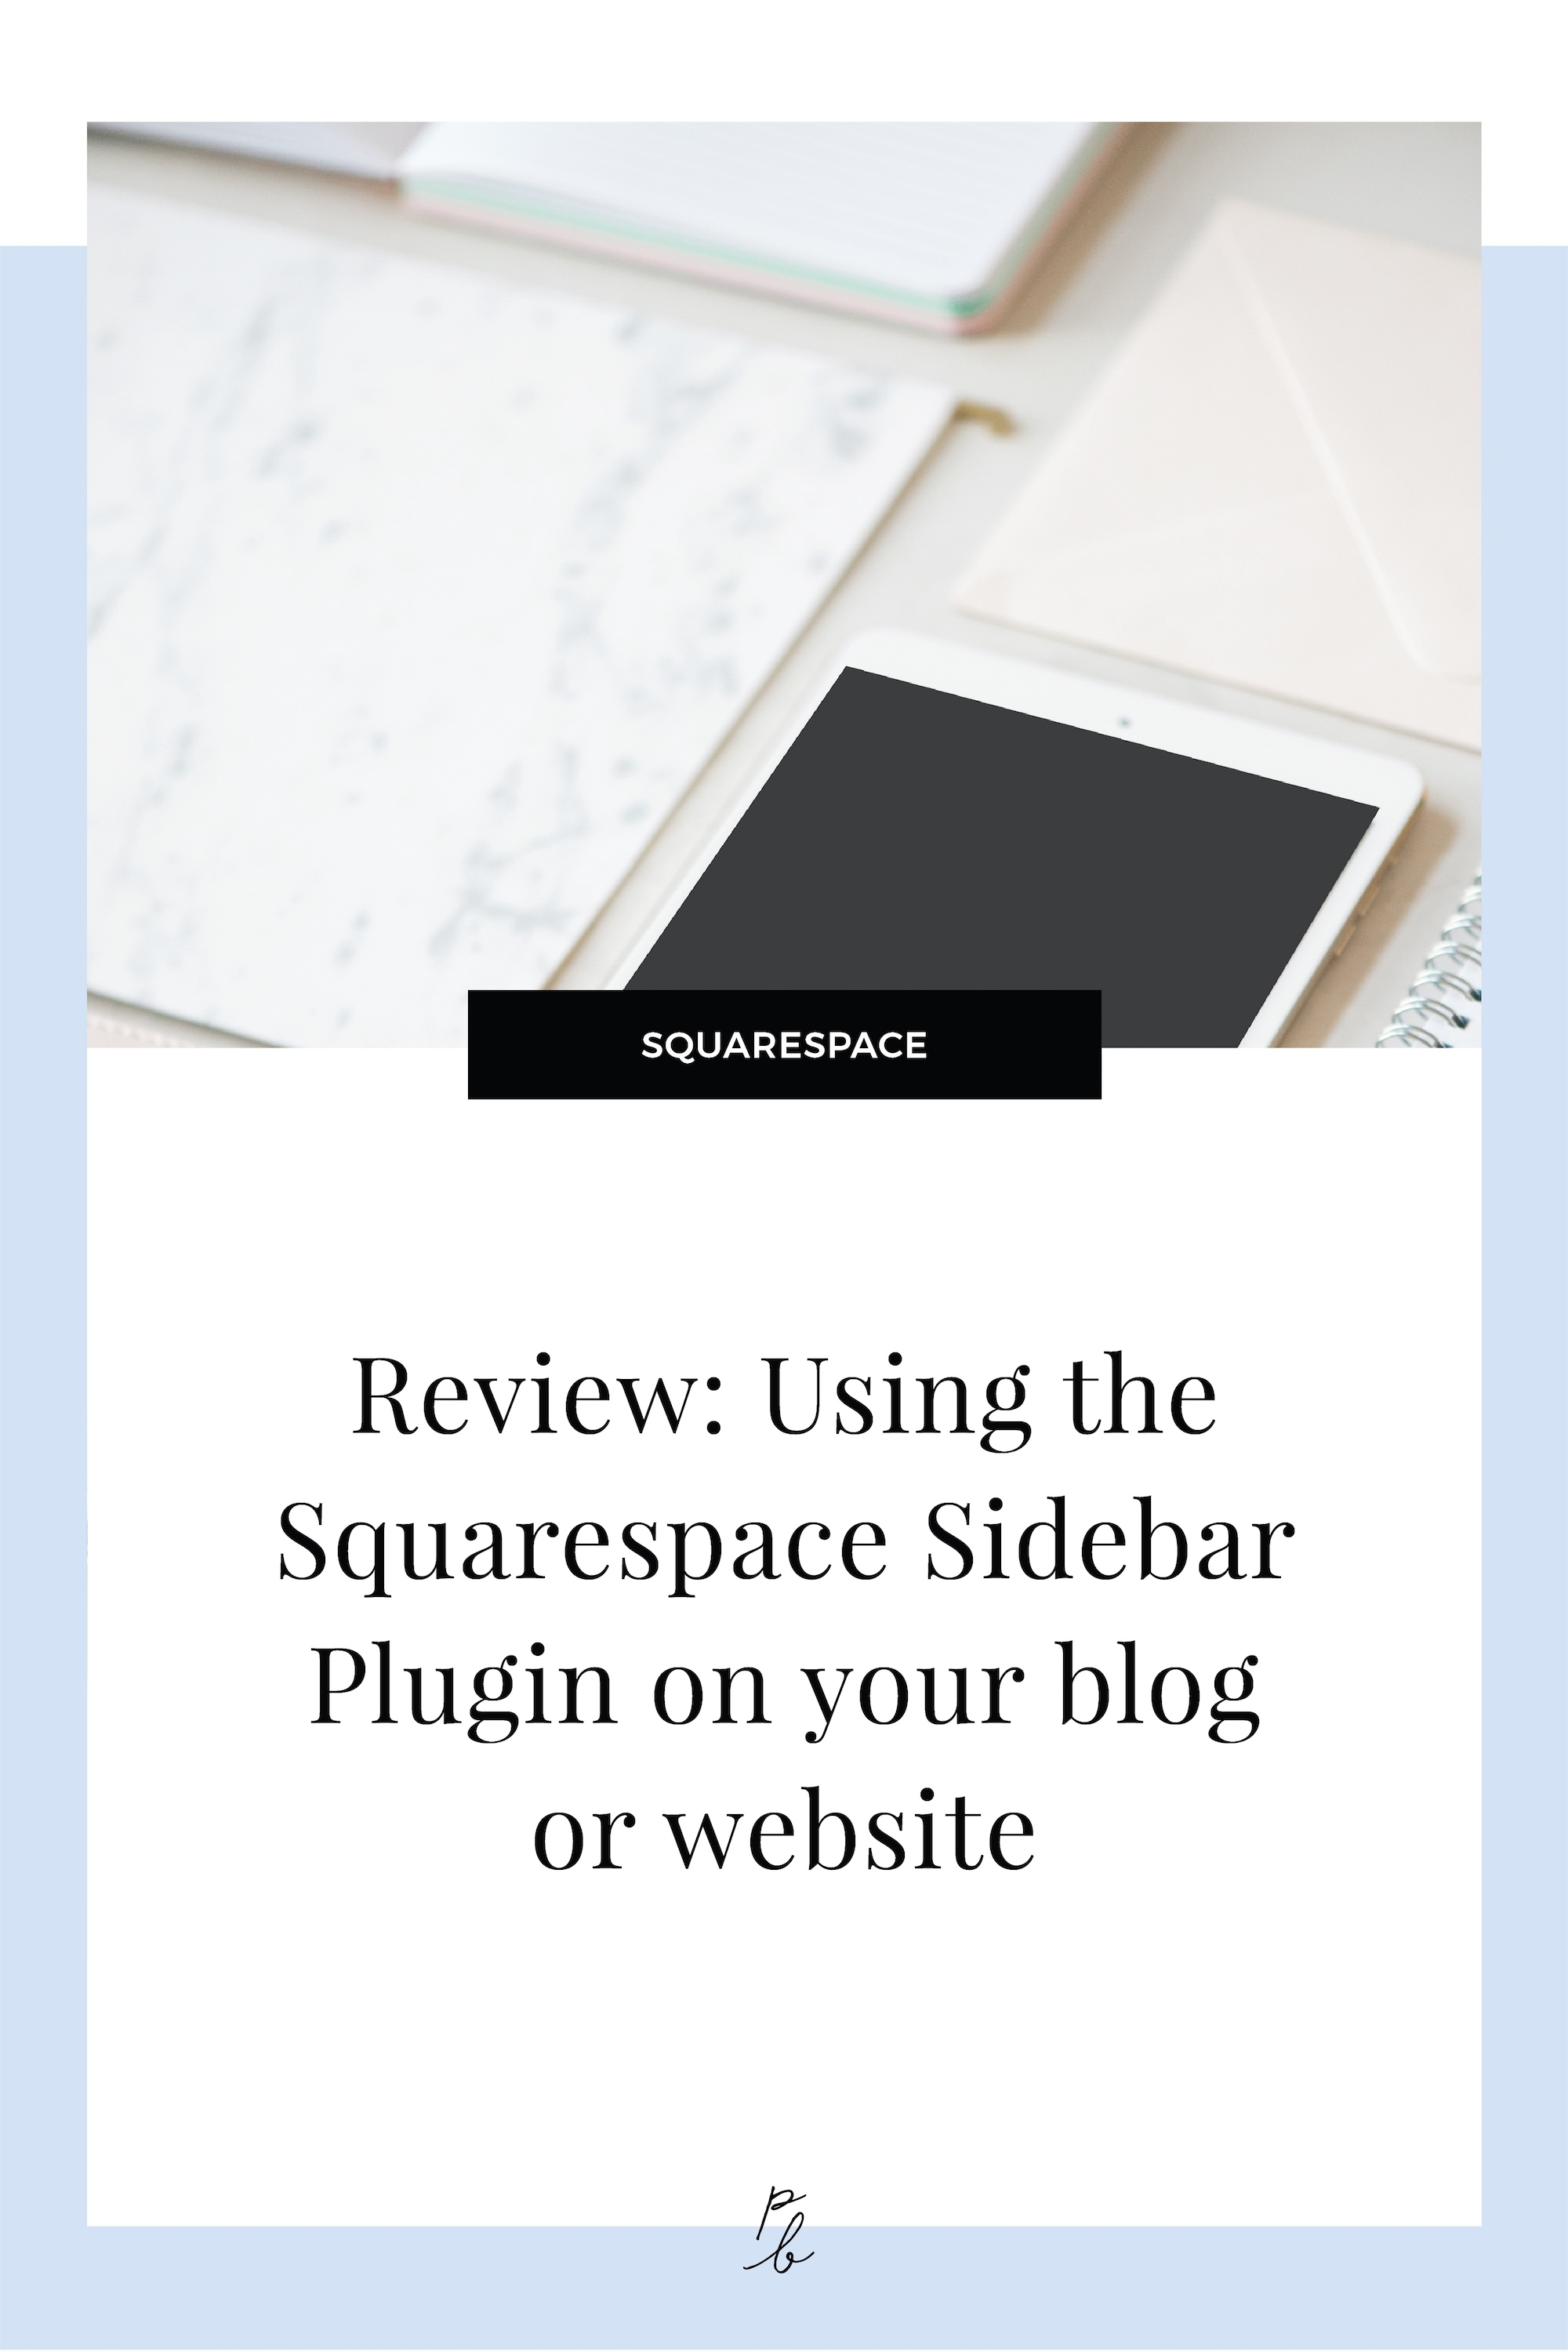 Using the Squarespace Sidebar Plugin on your blog or website.jpg